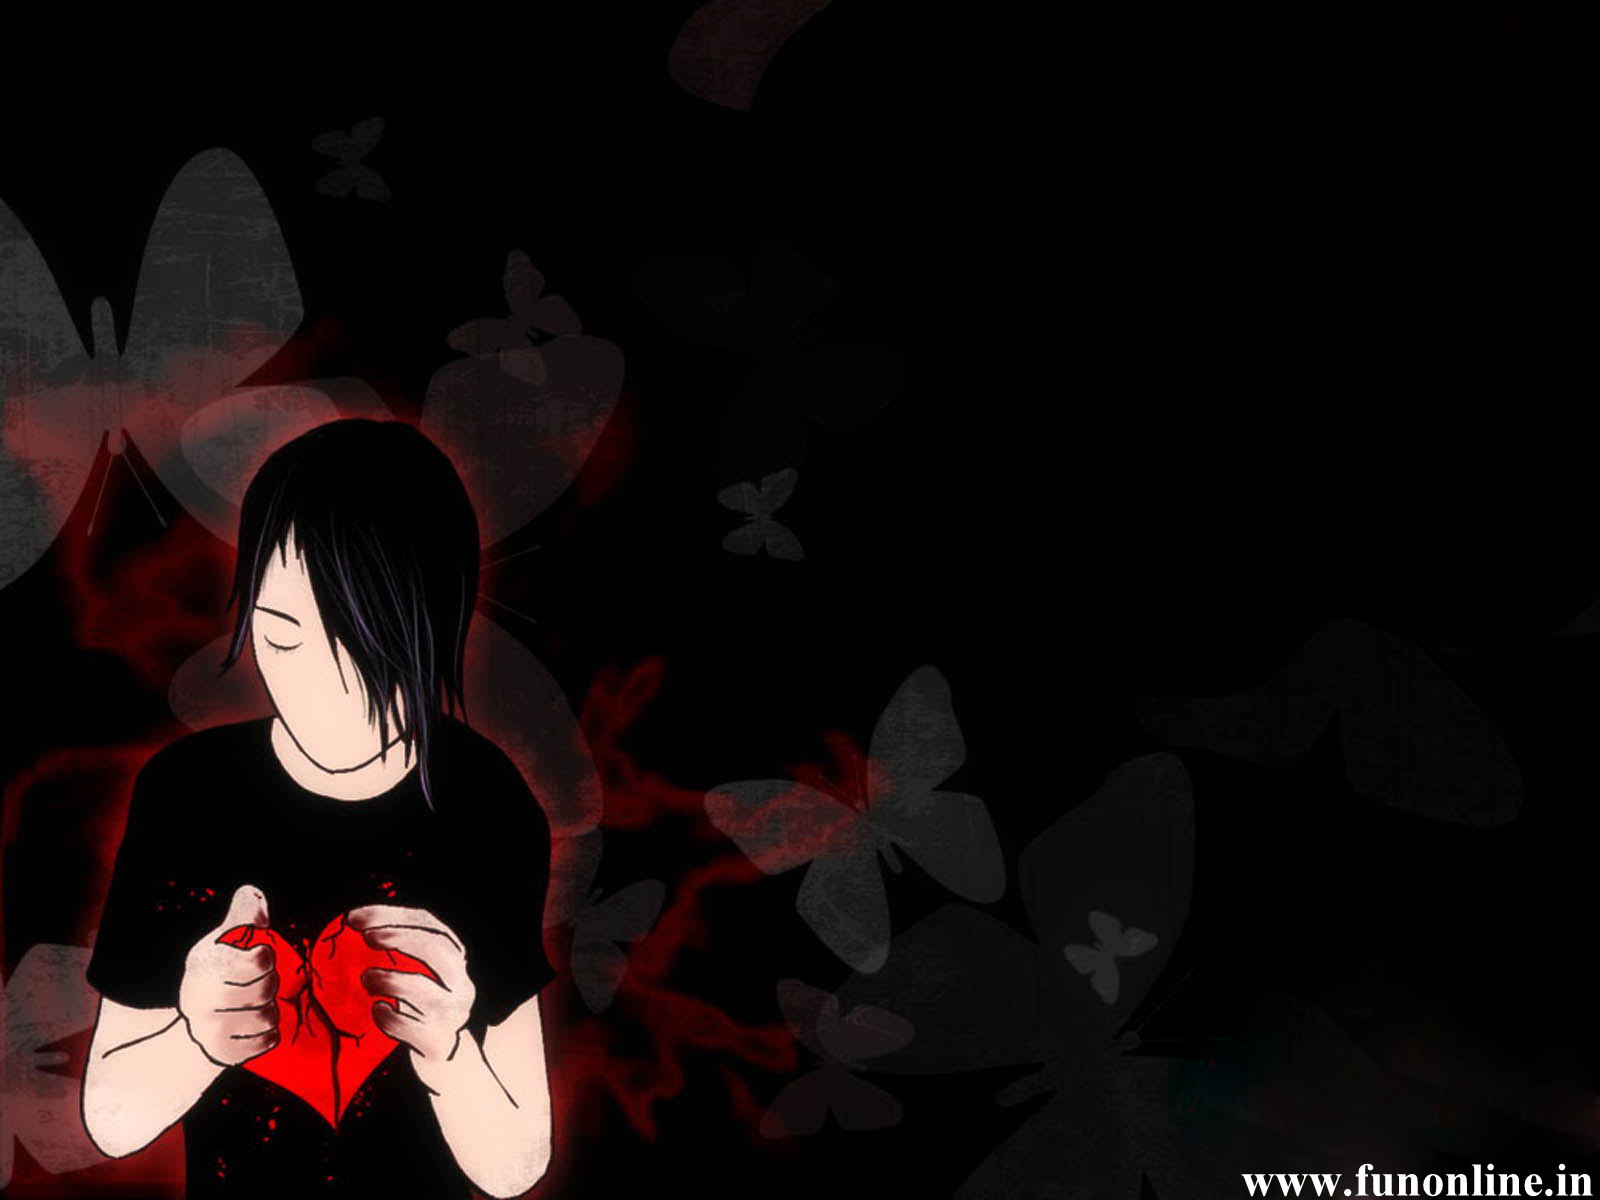 Emo Sad Love Wallpaper : free desktop wallpapers: Sad emo wallpapers